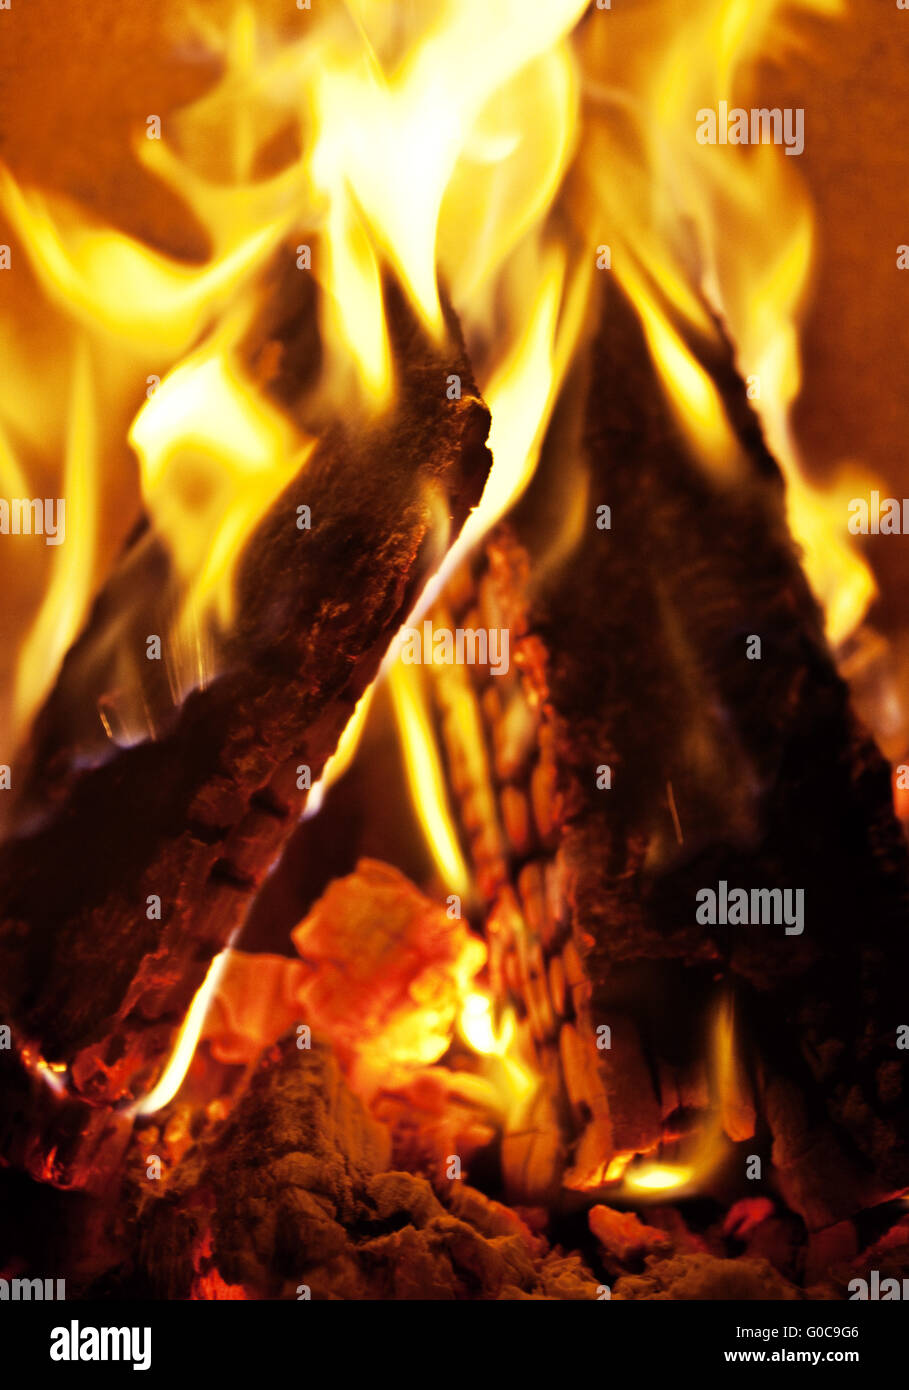 Fire in a fireplace, Germany, Europe Stock Photo